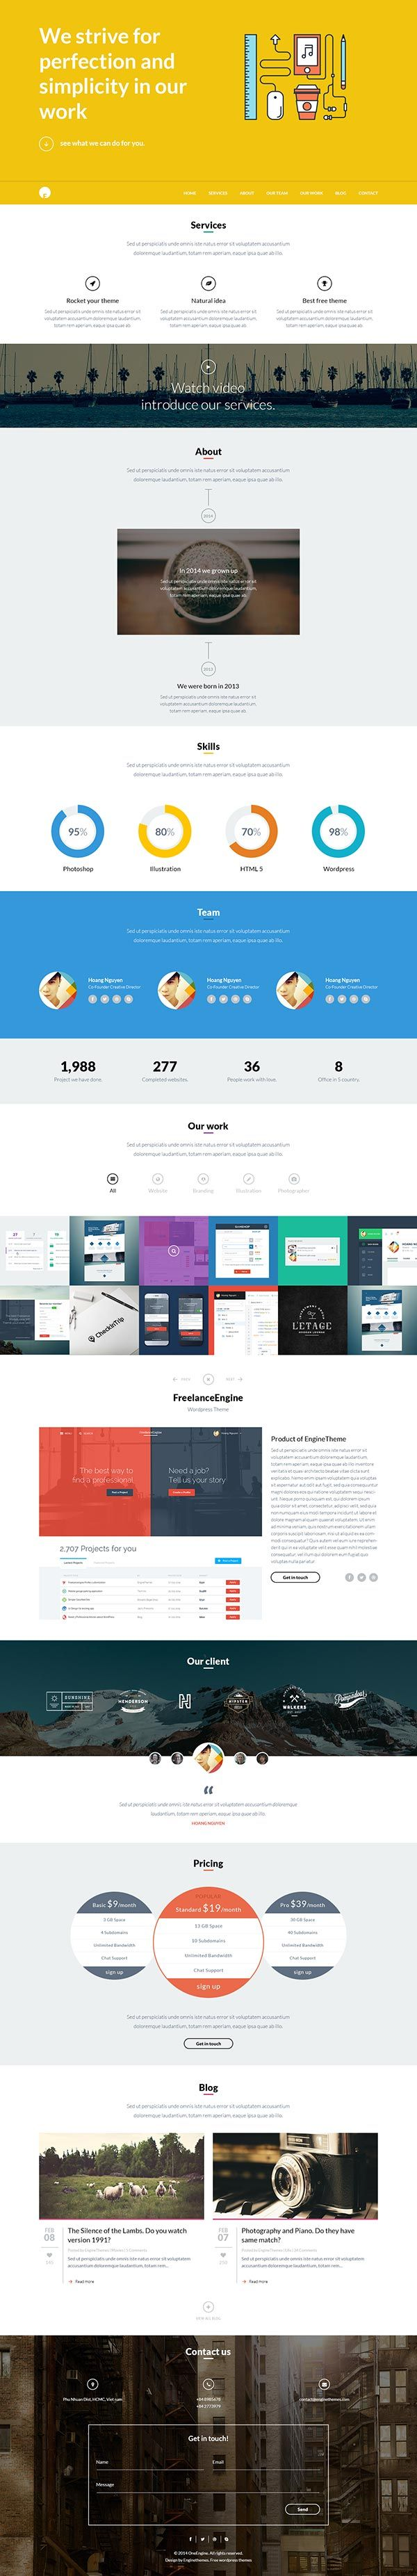 the 25 best free download bootstrap template images on pinterest